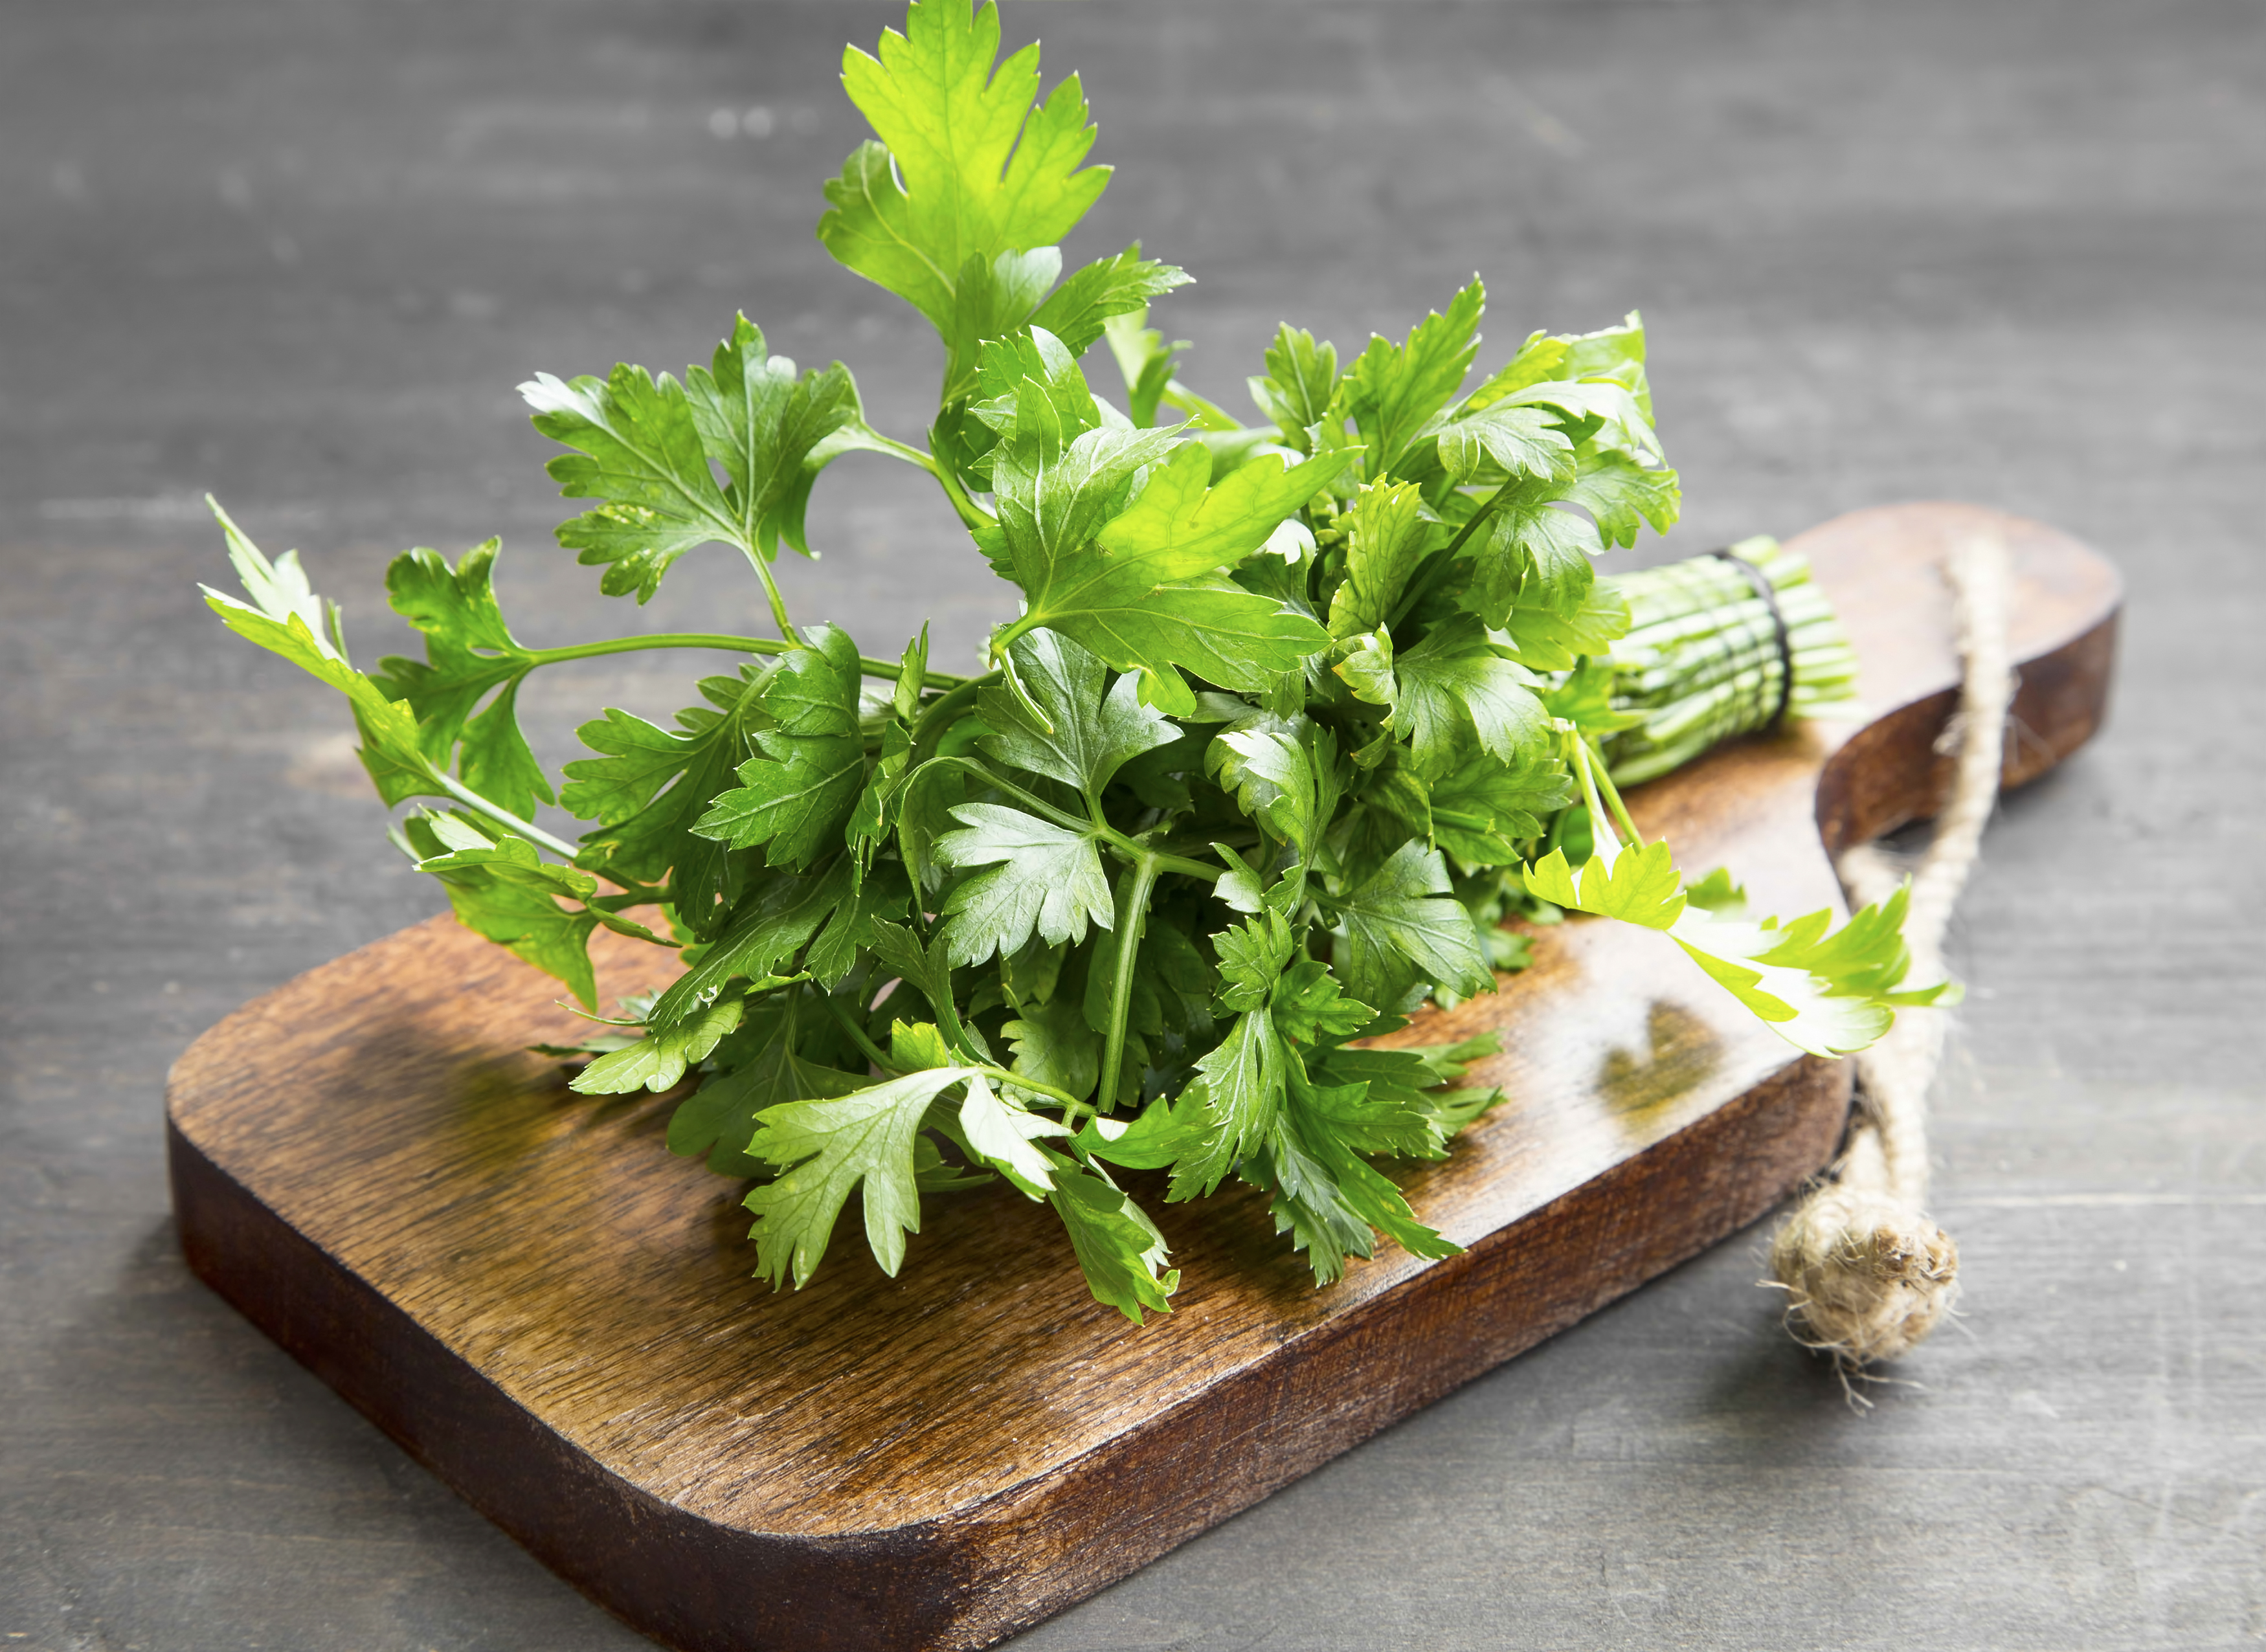 Is Too Much Intake of Parsley Bad? | Healthy Eating | SF Gate